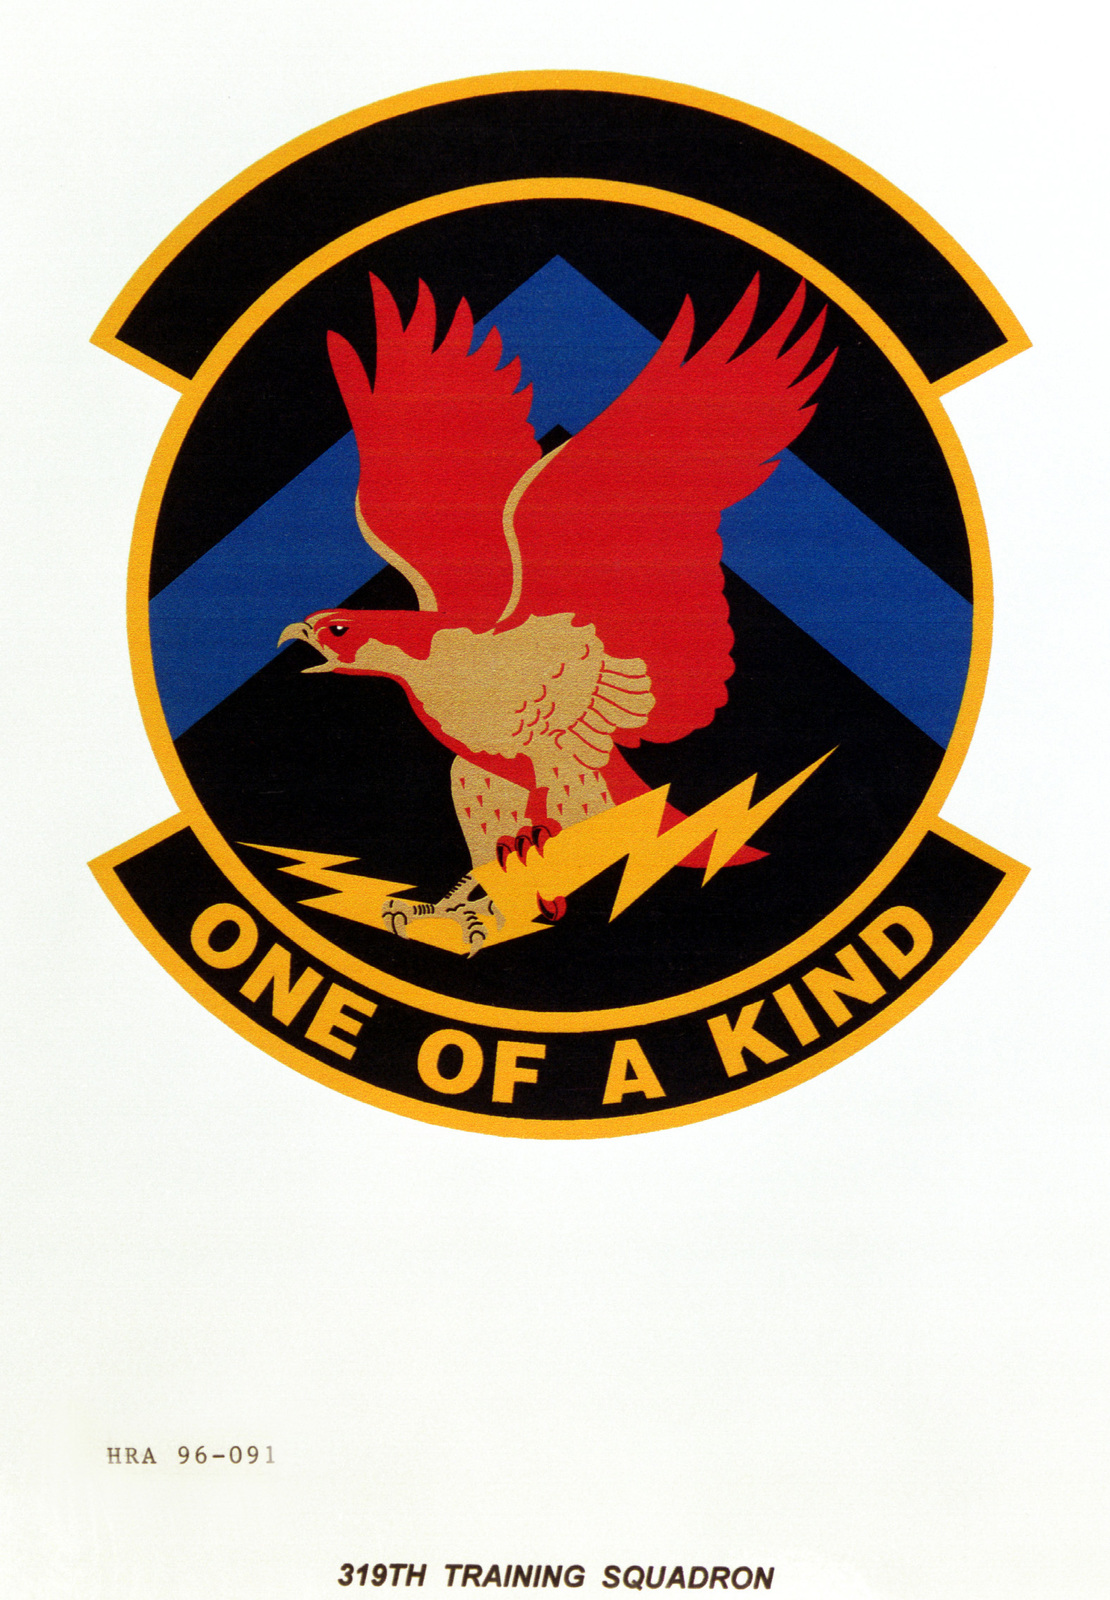 Air Force Organizational Emblem. 319th Training Squadron Exact Date Shot Unknown